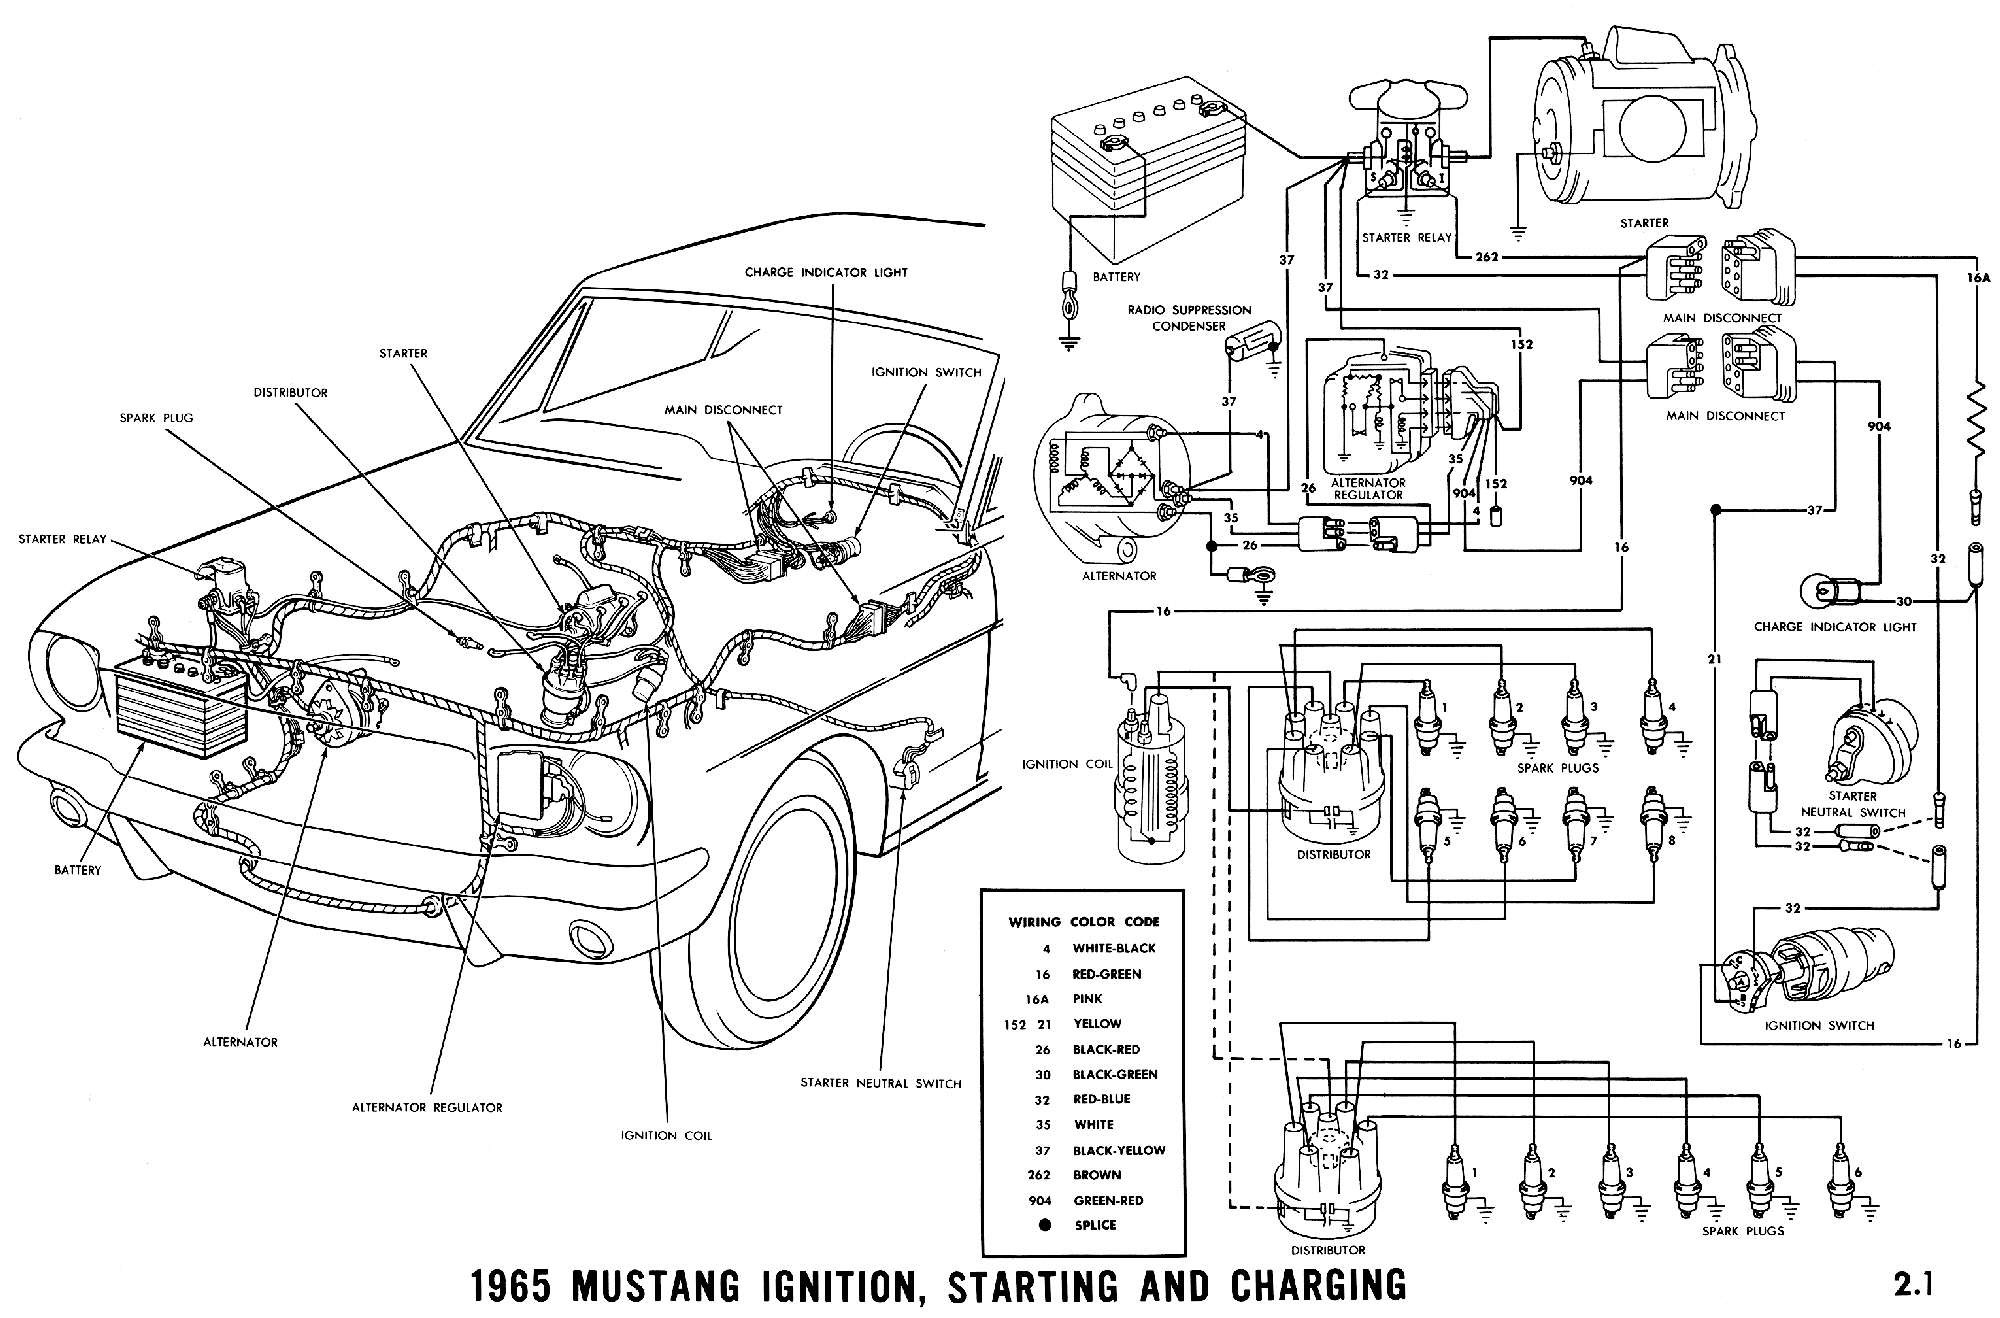 2000 Ford Crown Victoria Engine Diagram Pioneer Dxt